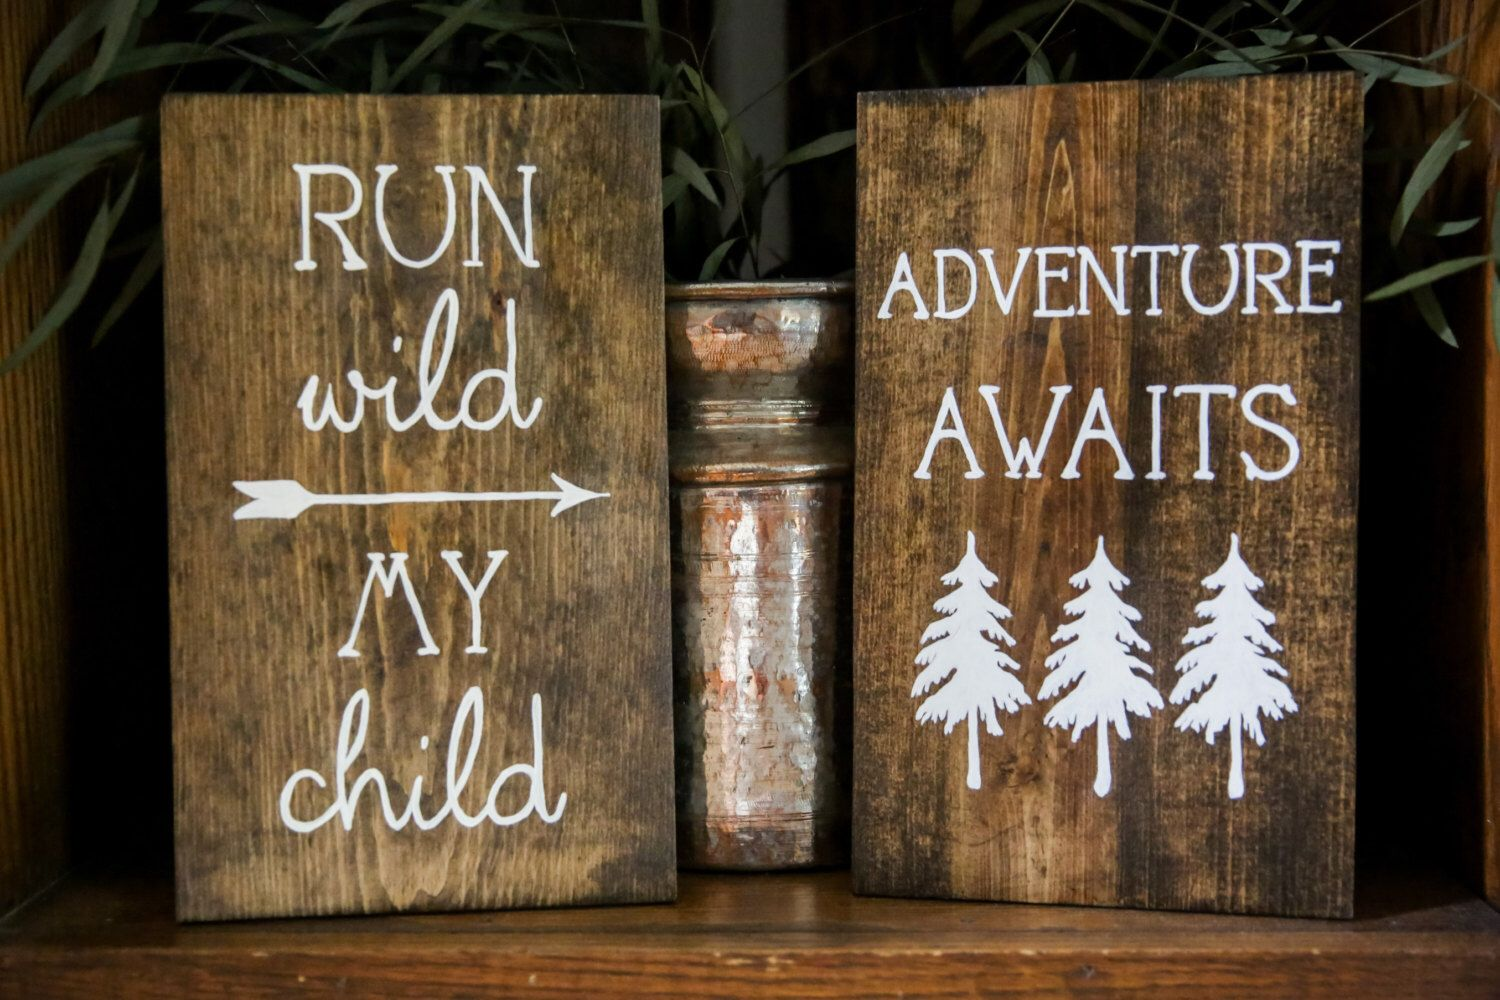 Run Wild My Child Adventure Awaits Set Of Two Wood Signs